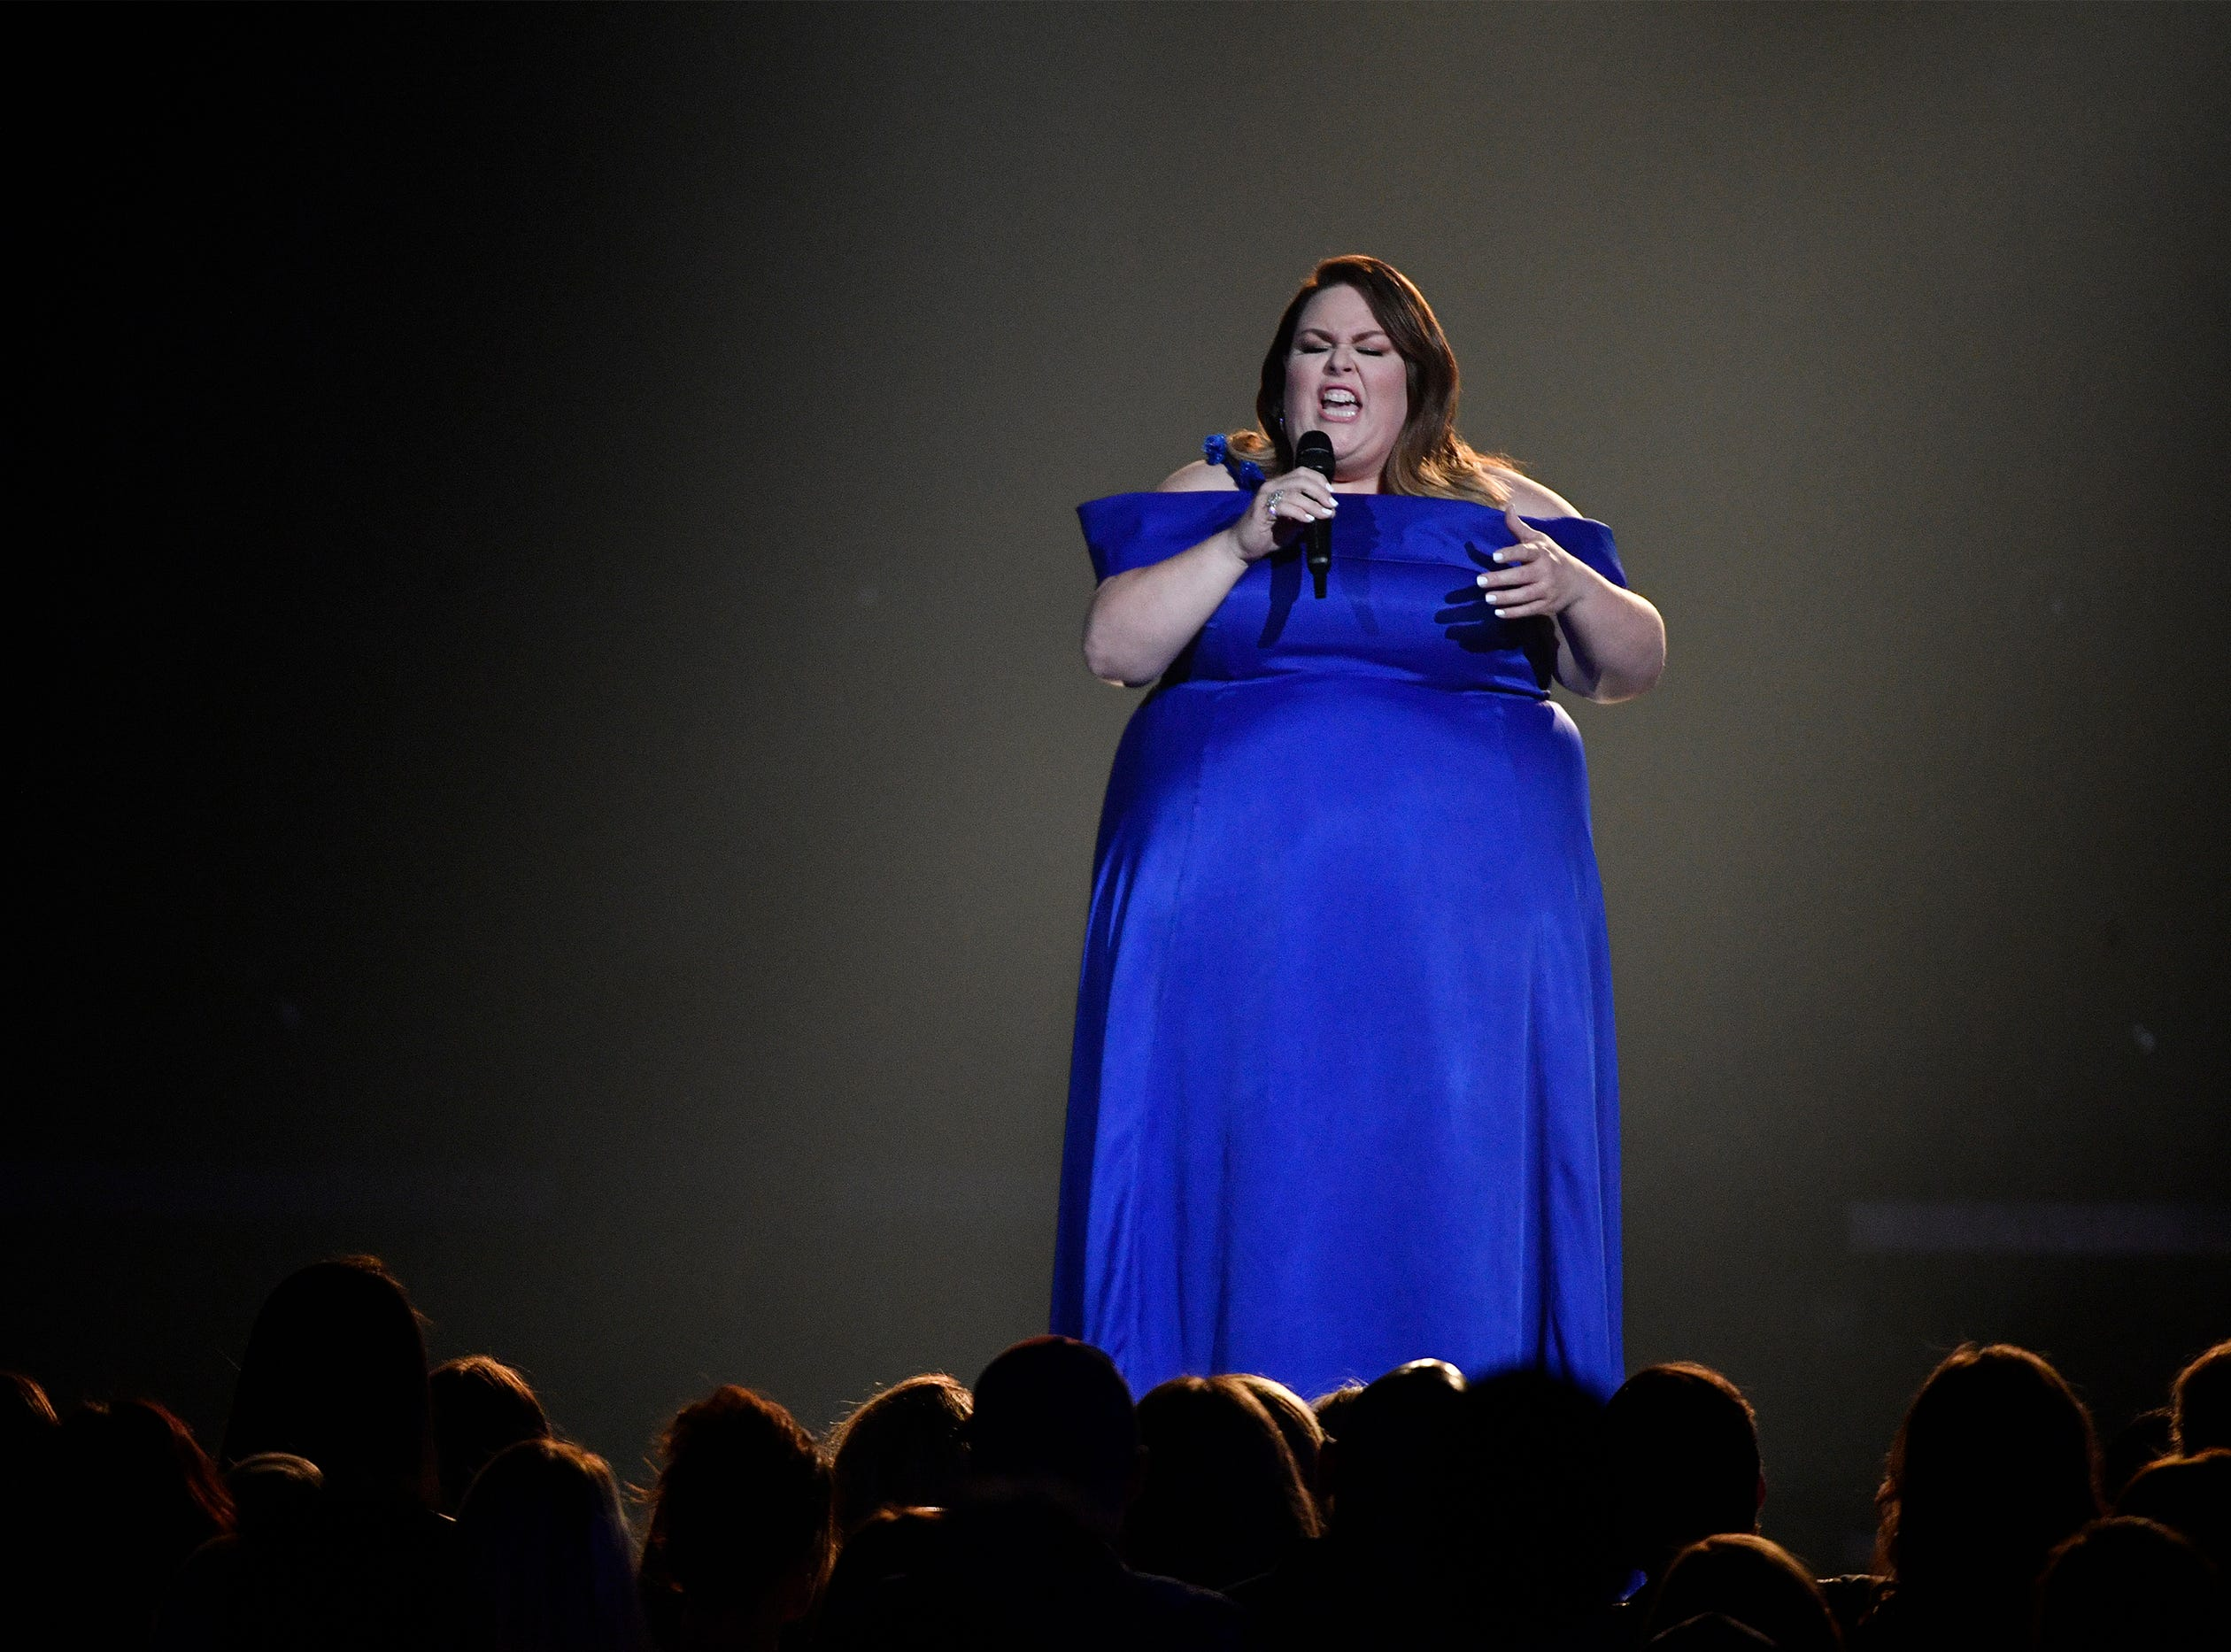 Chrissy Metz performs during the 54TH Academy of Country Music Awards Sunday, April 7, 2019, in Las Vegas, Nev.